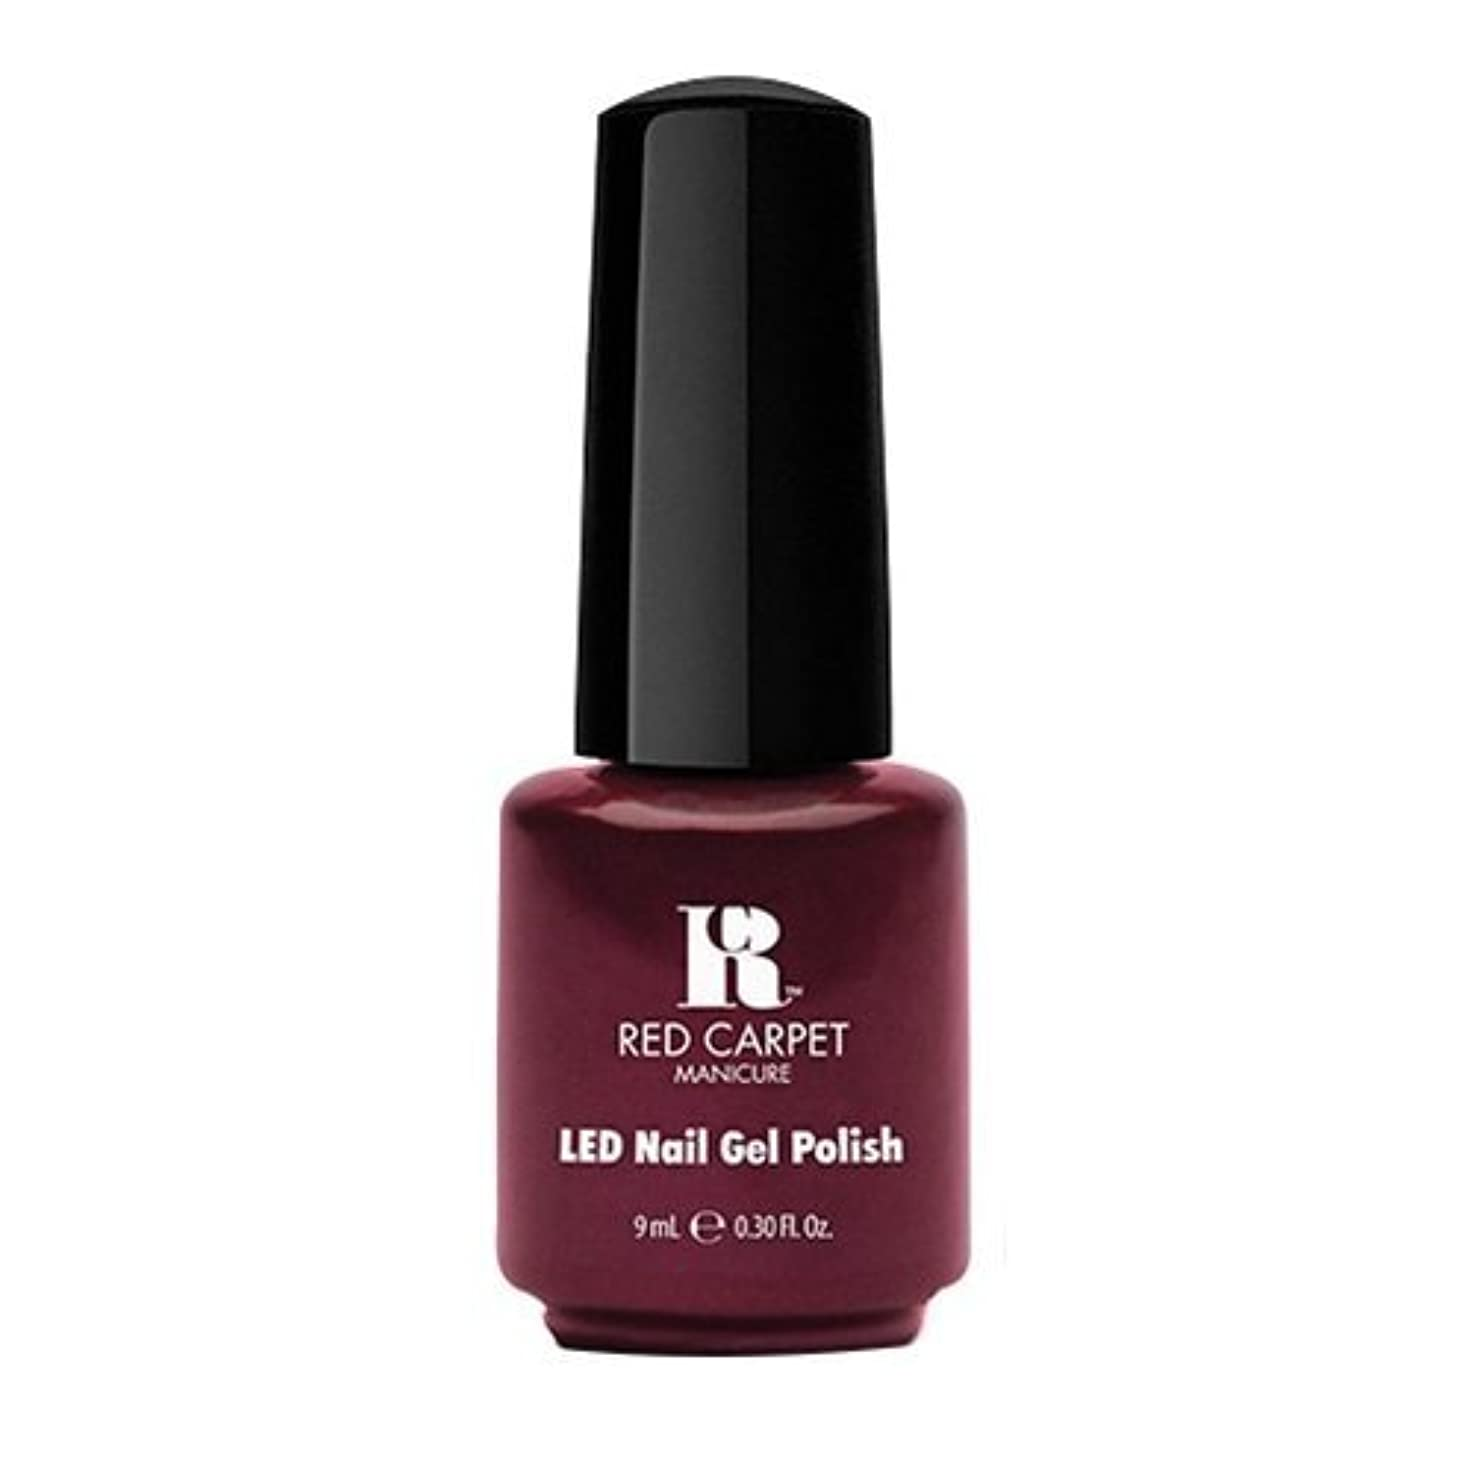 暖かさアンドリューハリディ志すRed Carpet Manicure - LED Nail Gel Polish - Glamspiration - 0.3oz / 9ml